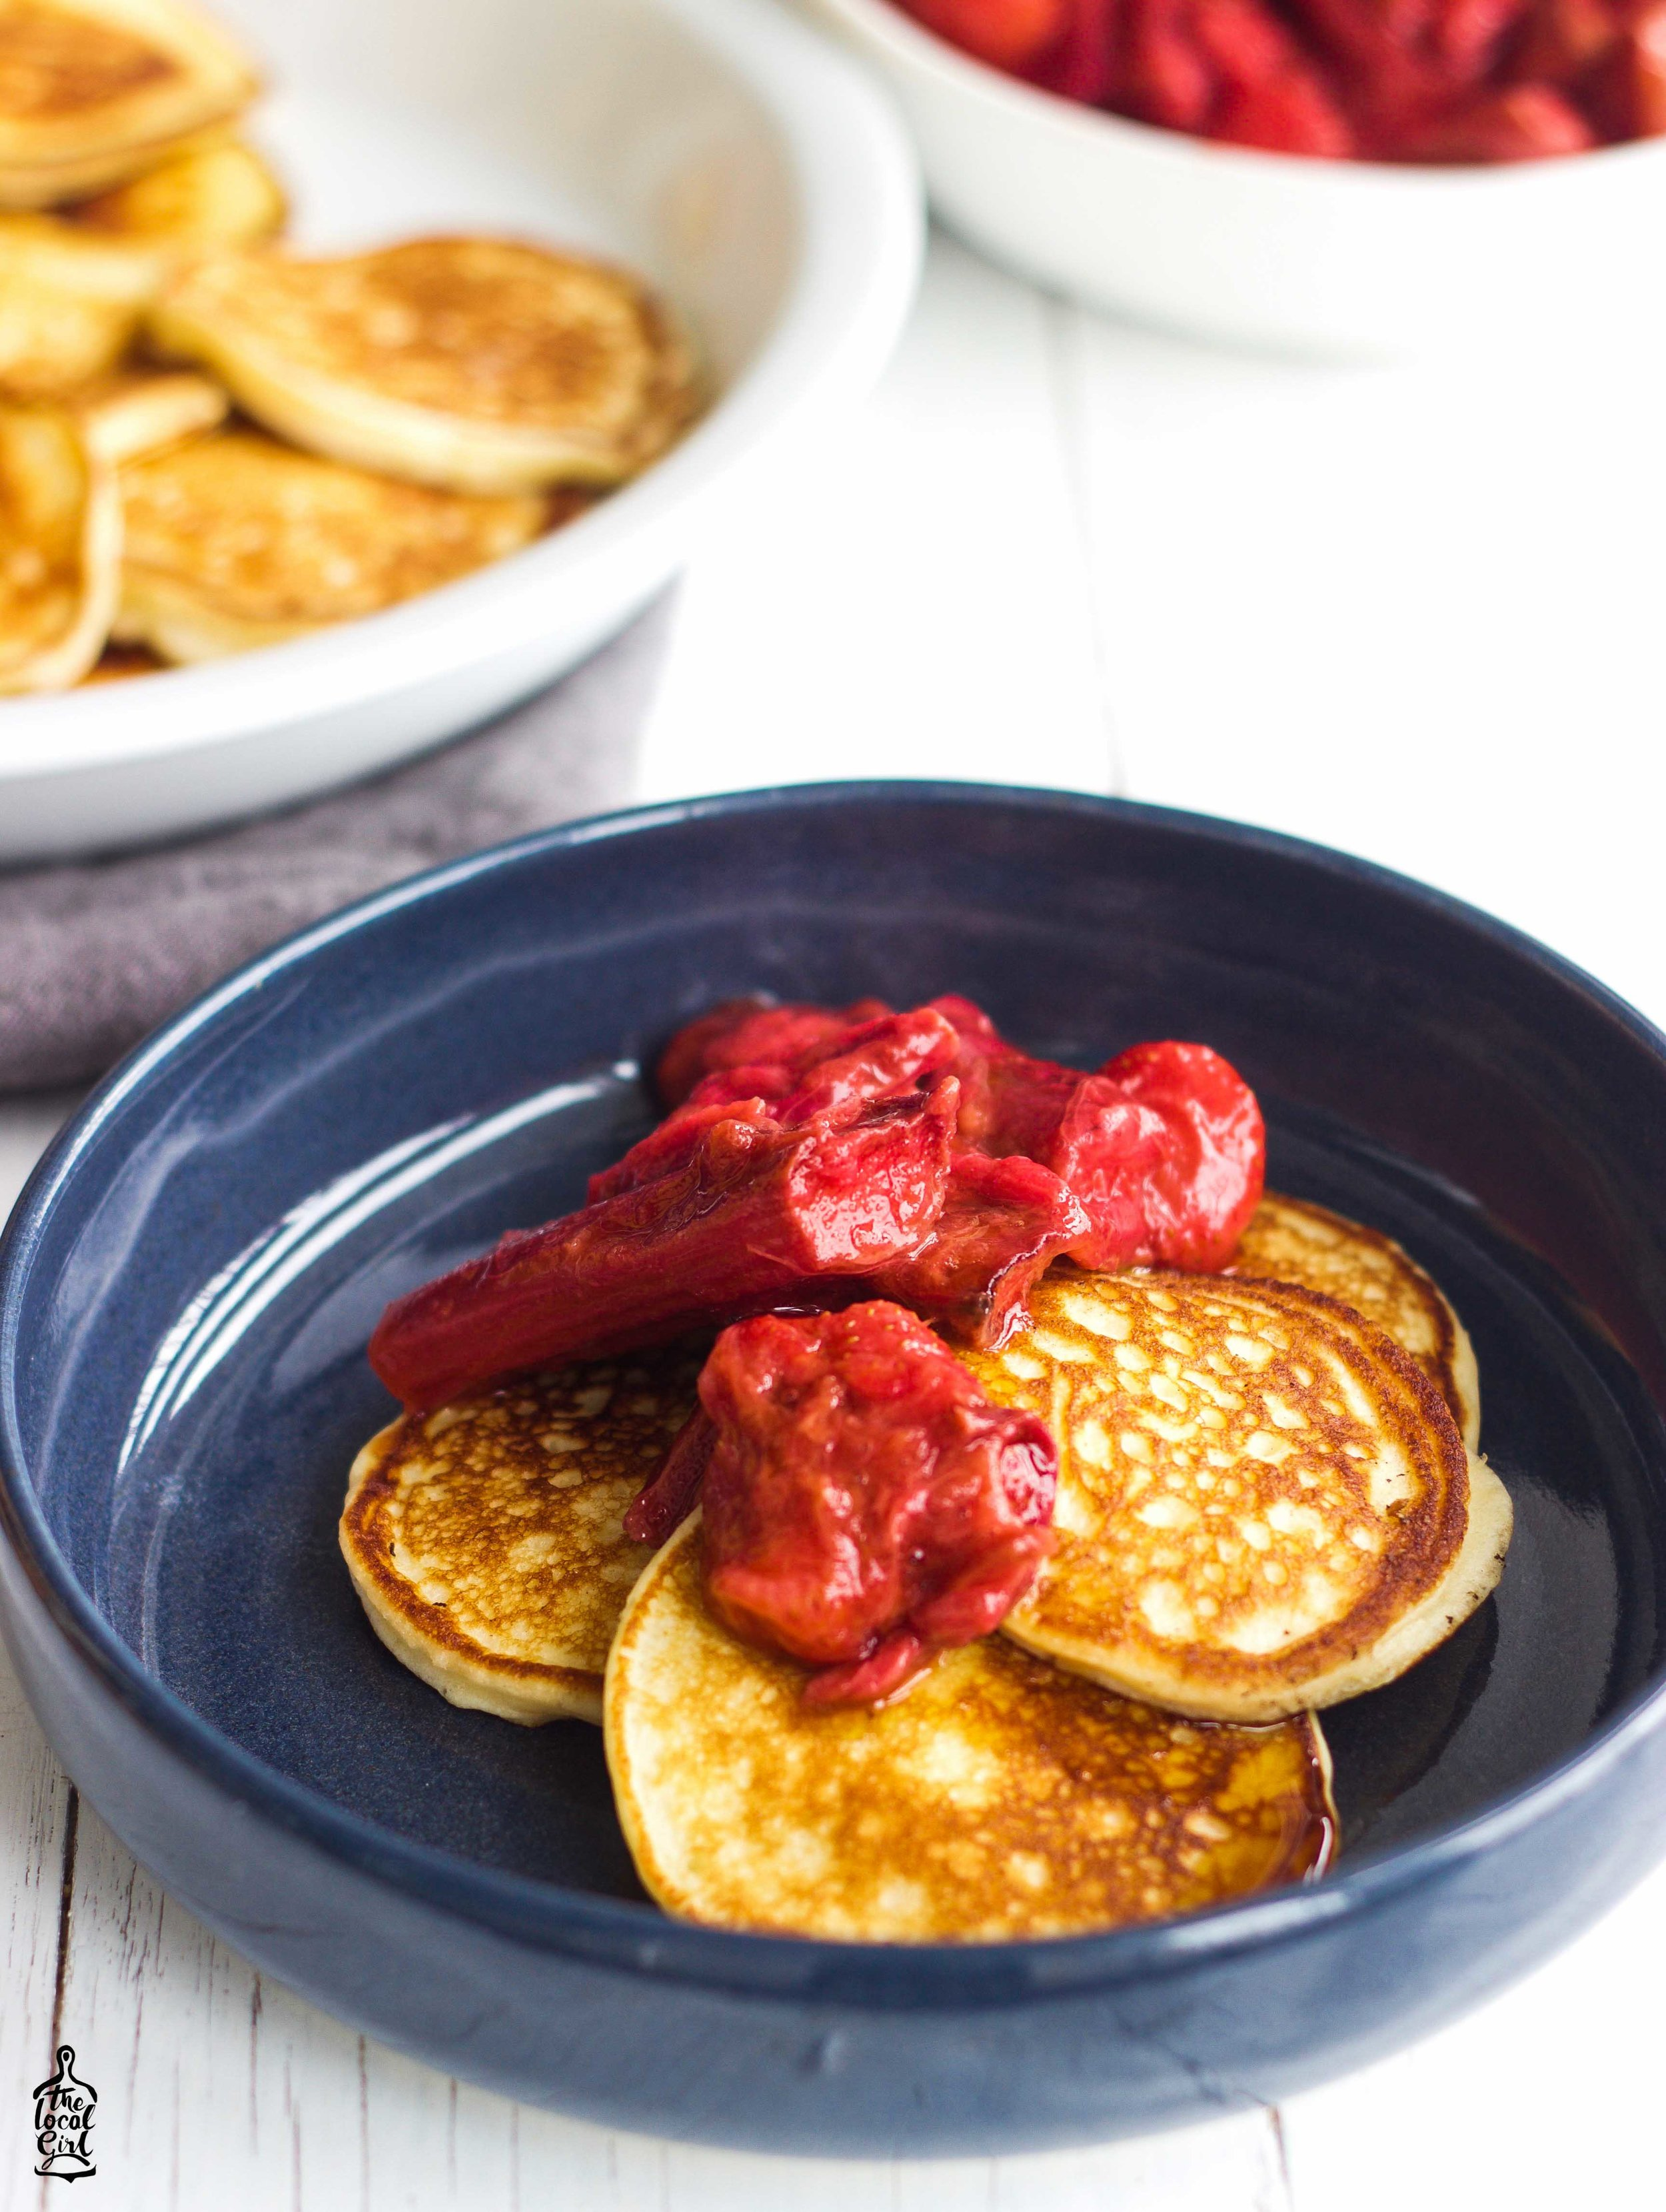 ricotta hotcakes with rhubarb compote